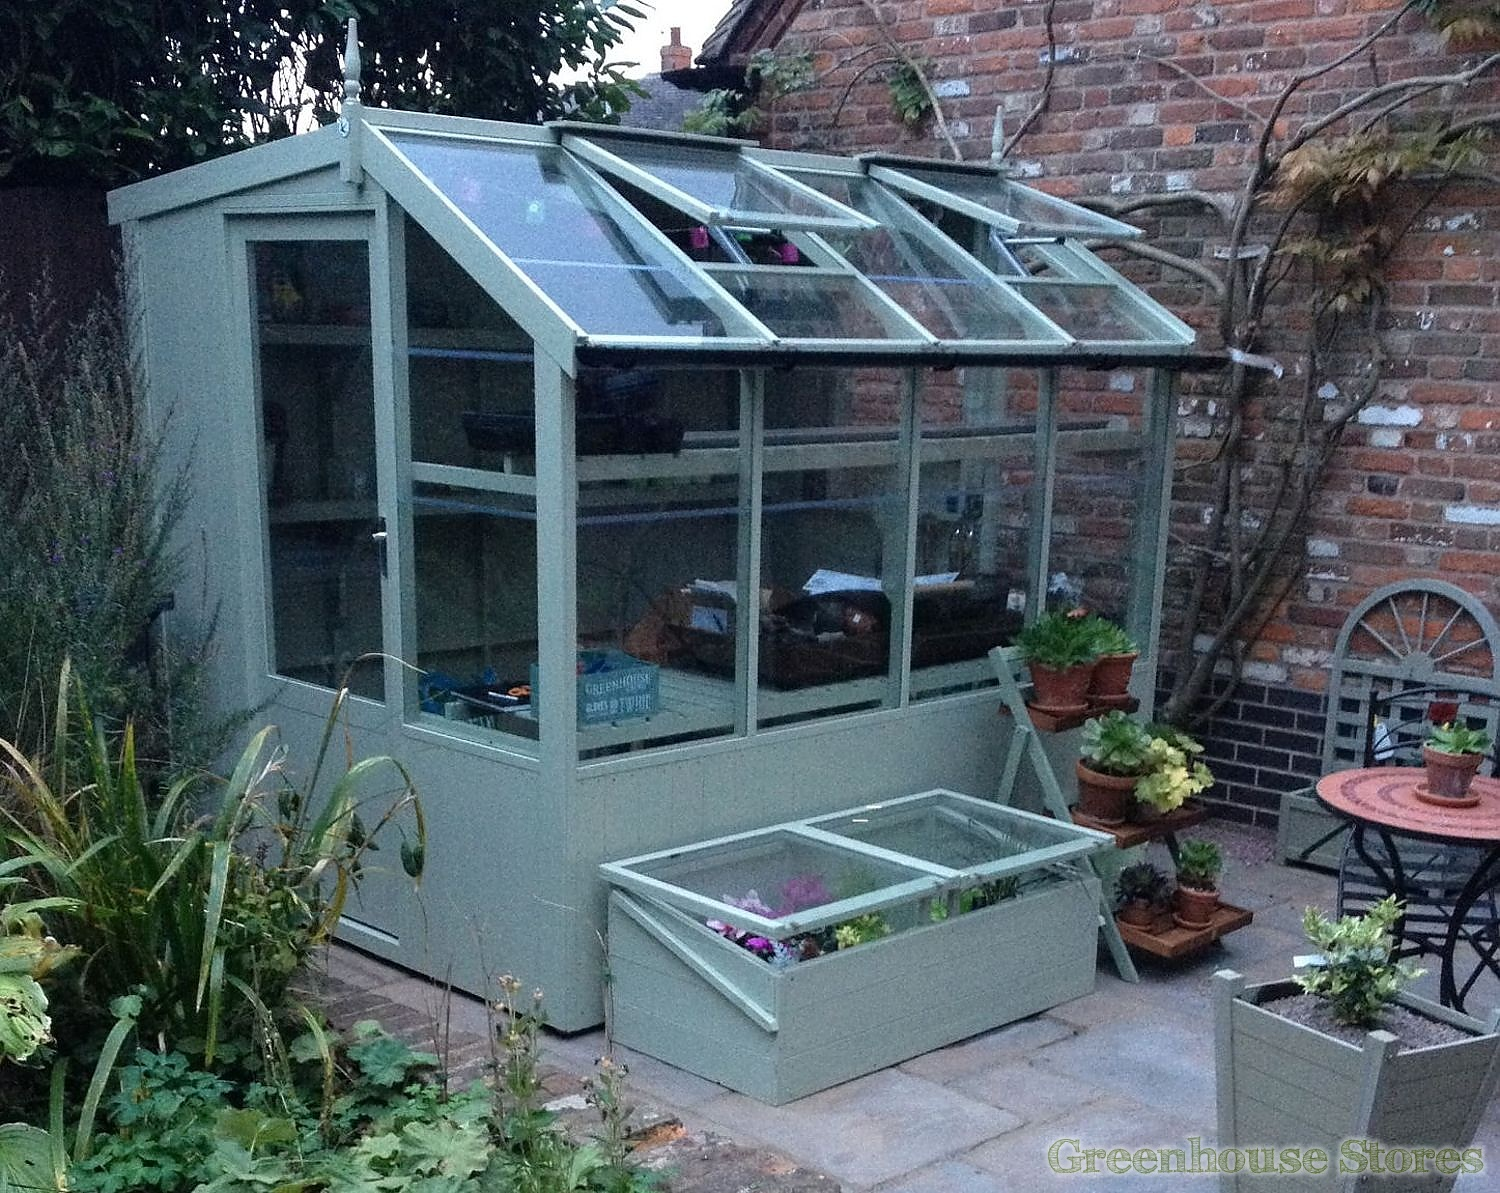 Swallow Jay 6x6 Wooden Potting Shed Greenhouse Stores